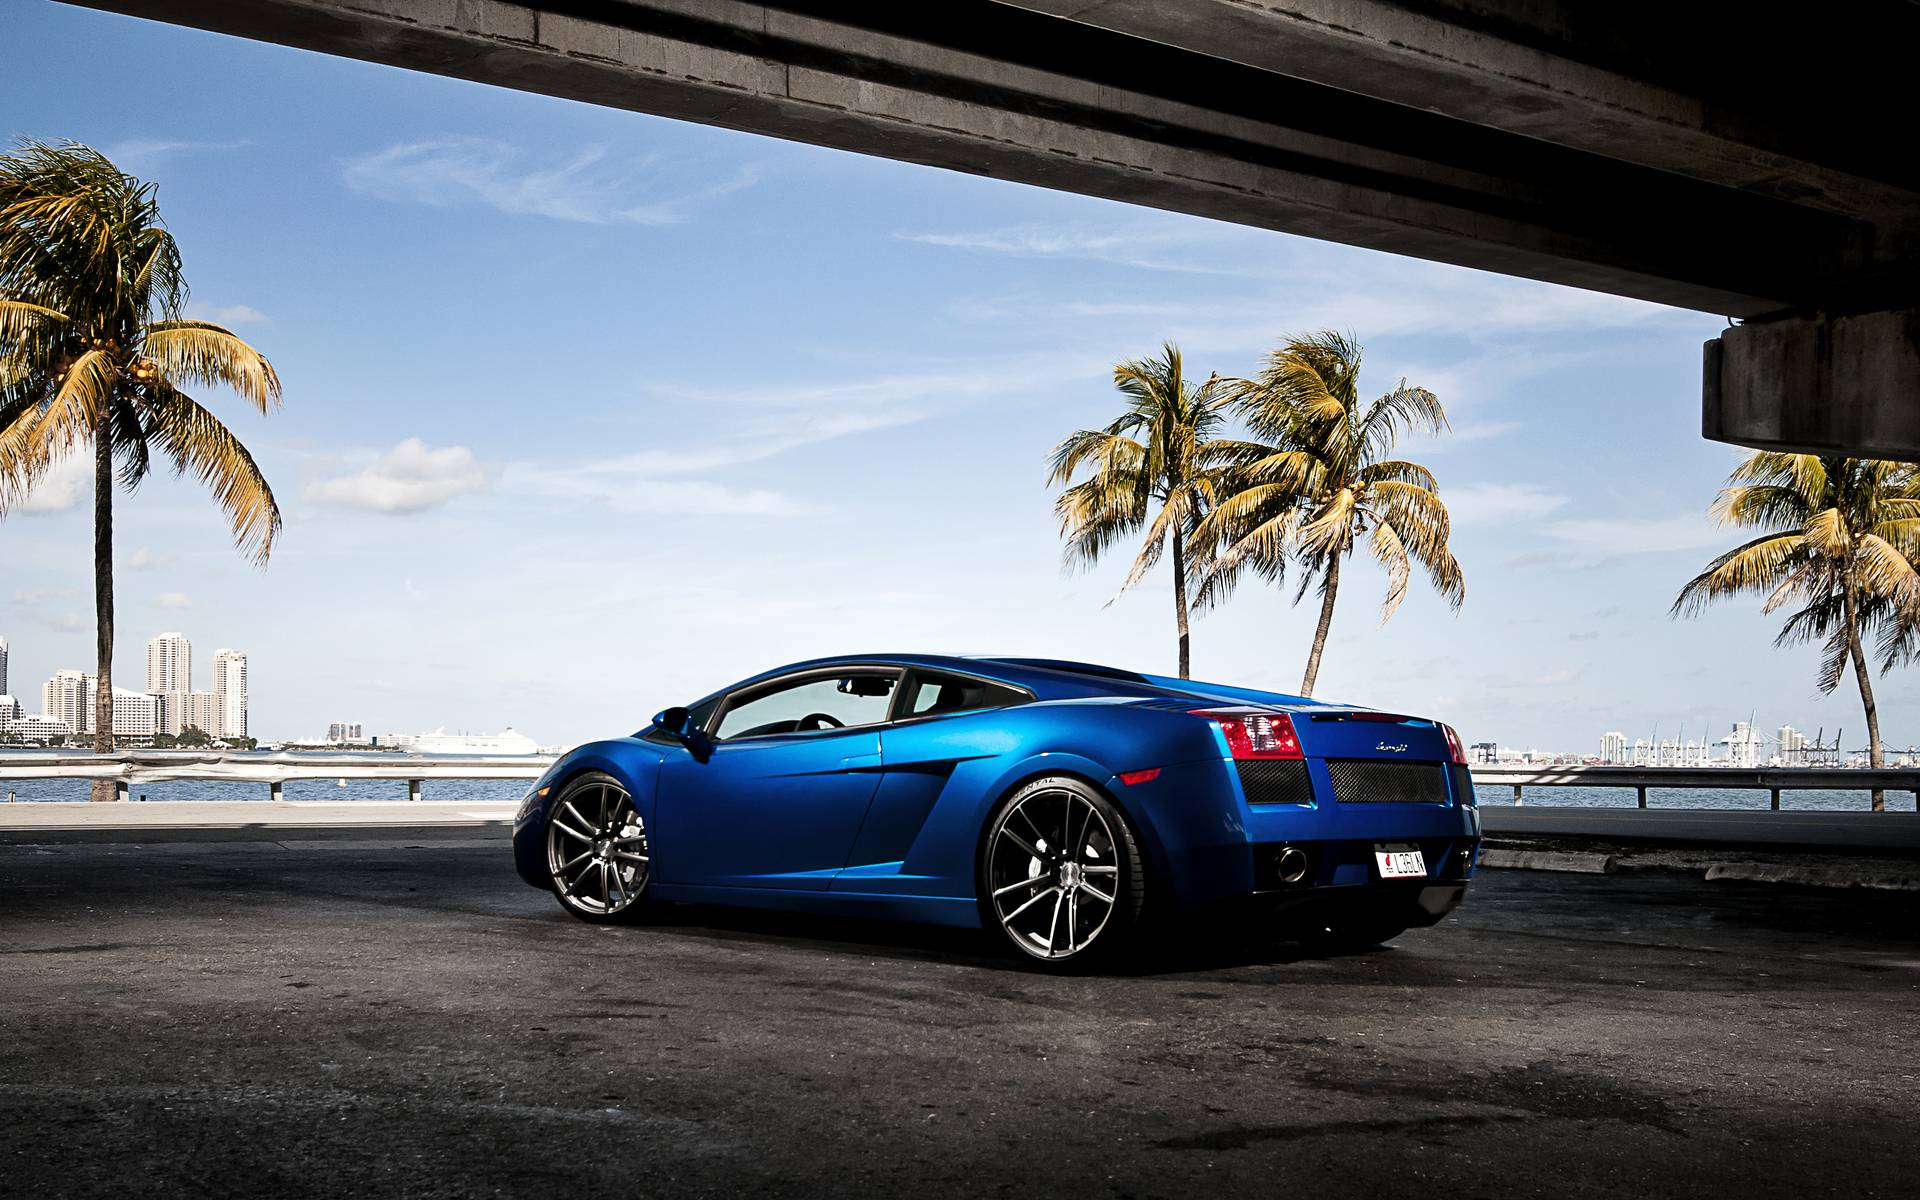 2015 lamborghini gallardo blue background hd wallpaper desktop - Lamborghini Gallardo Wallpaper Blue